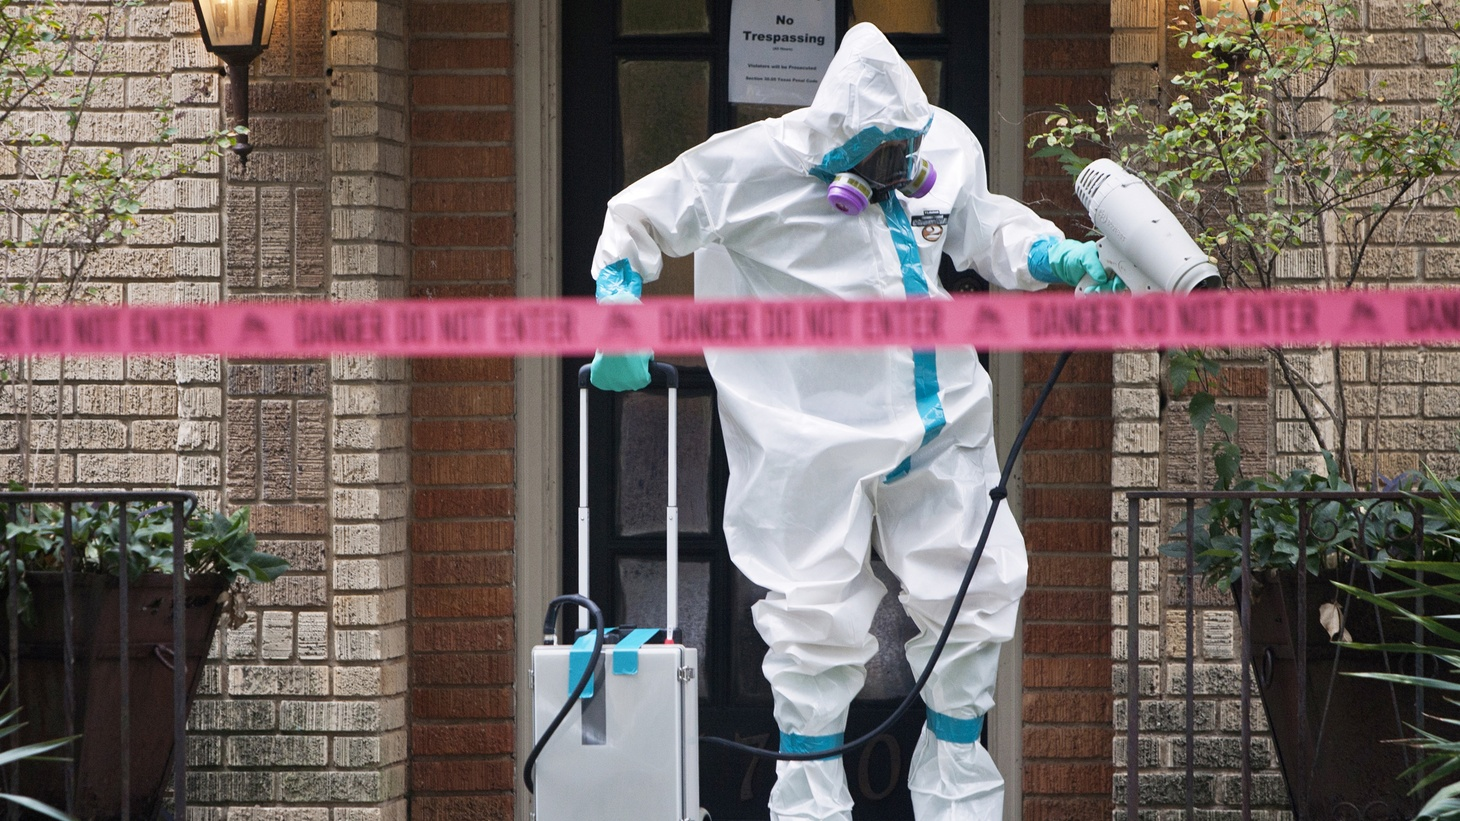 The first person to contract Ebola in the United States is a nurse who treated Thomas Duncan, the man who died of Ebola in Dallas after catching it in Liberia. Other healthcare workers who treated Duncan might be at risk.We'll hear about the risks in this country, and how Ebola spread in Liberia, Guinea and Sierra Leone.